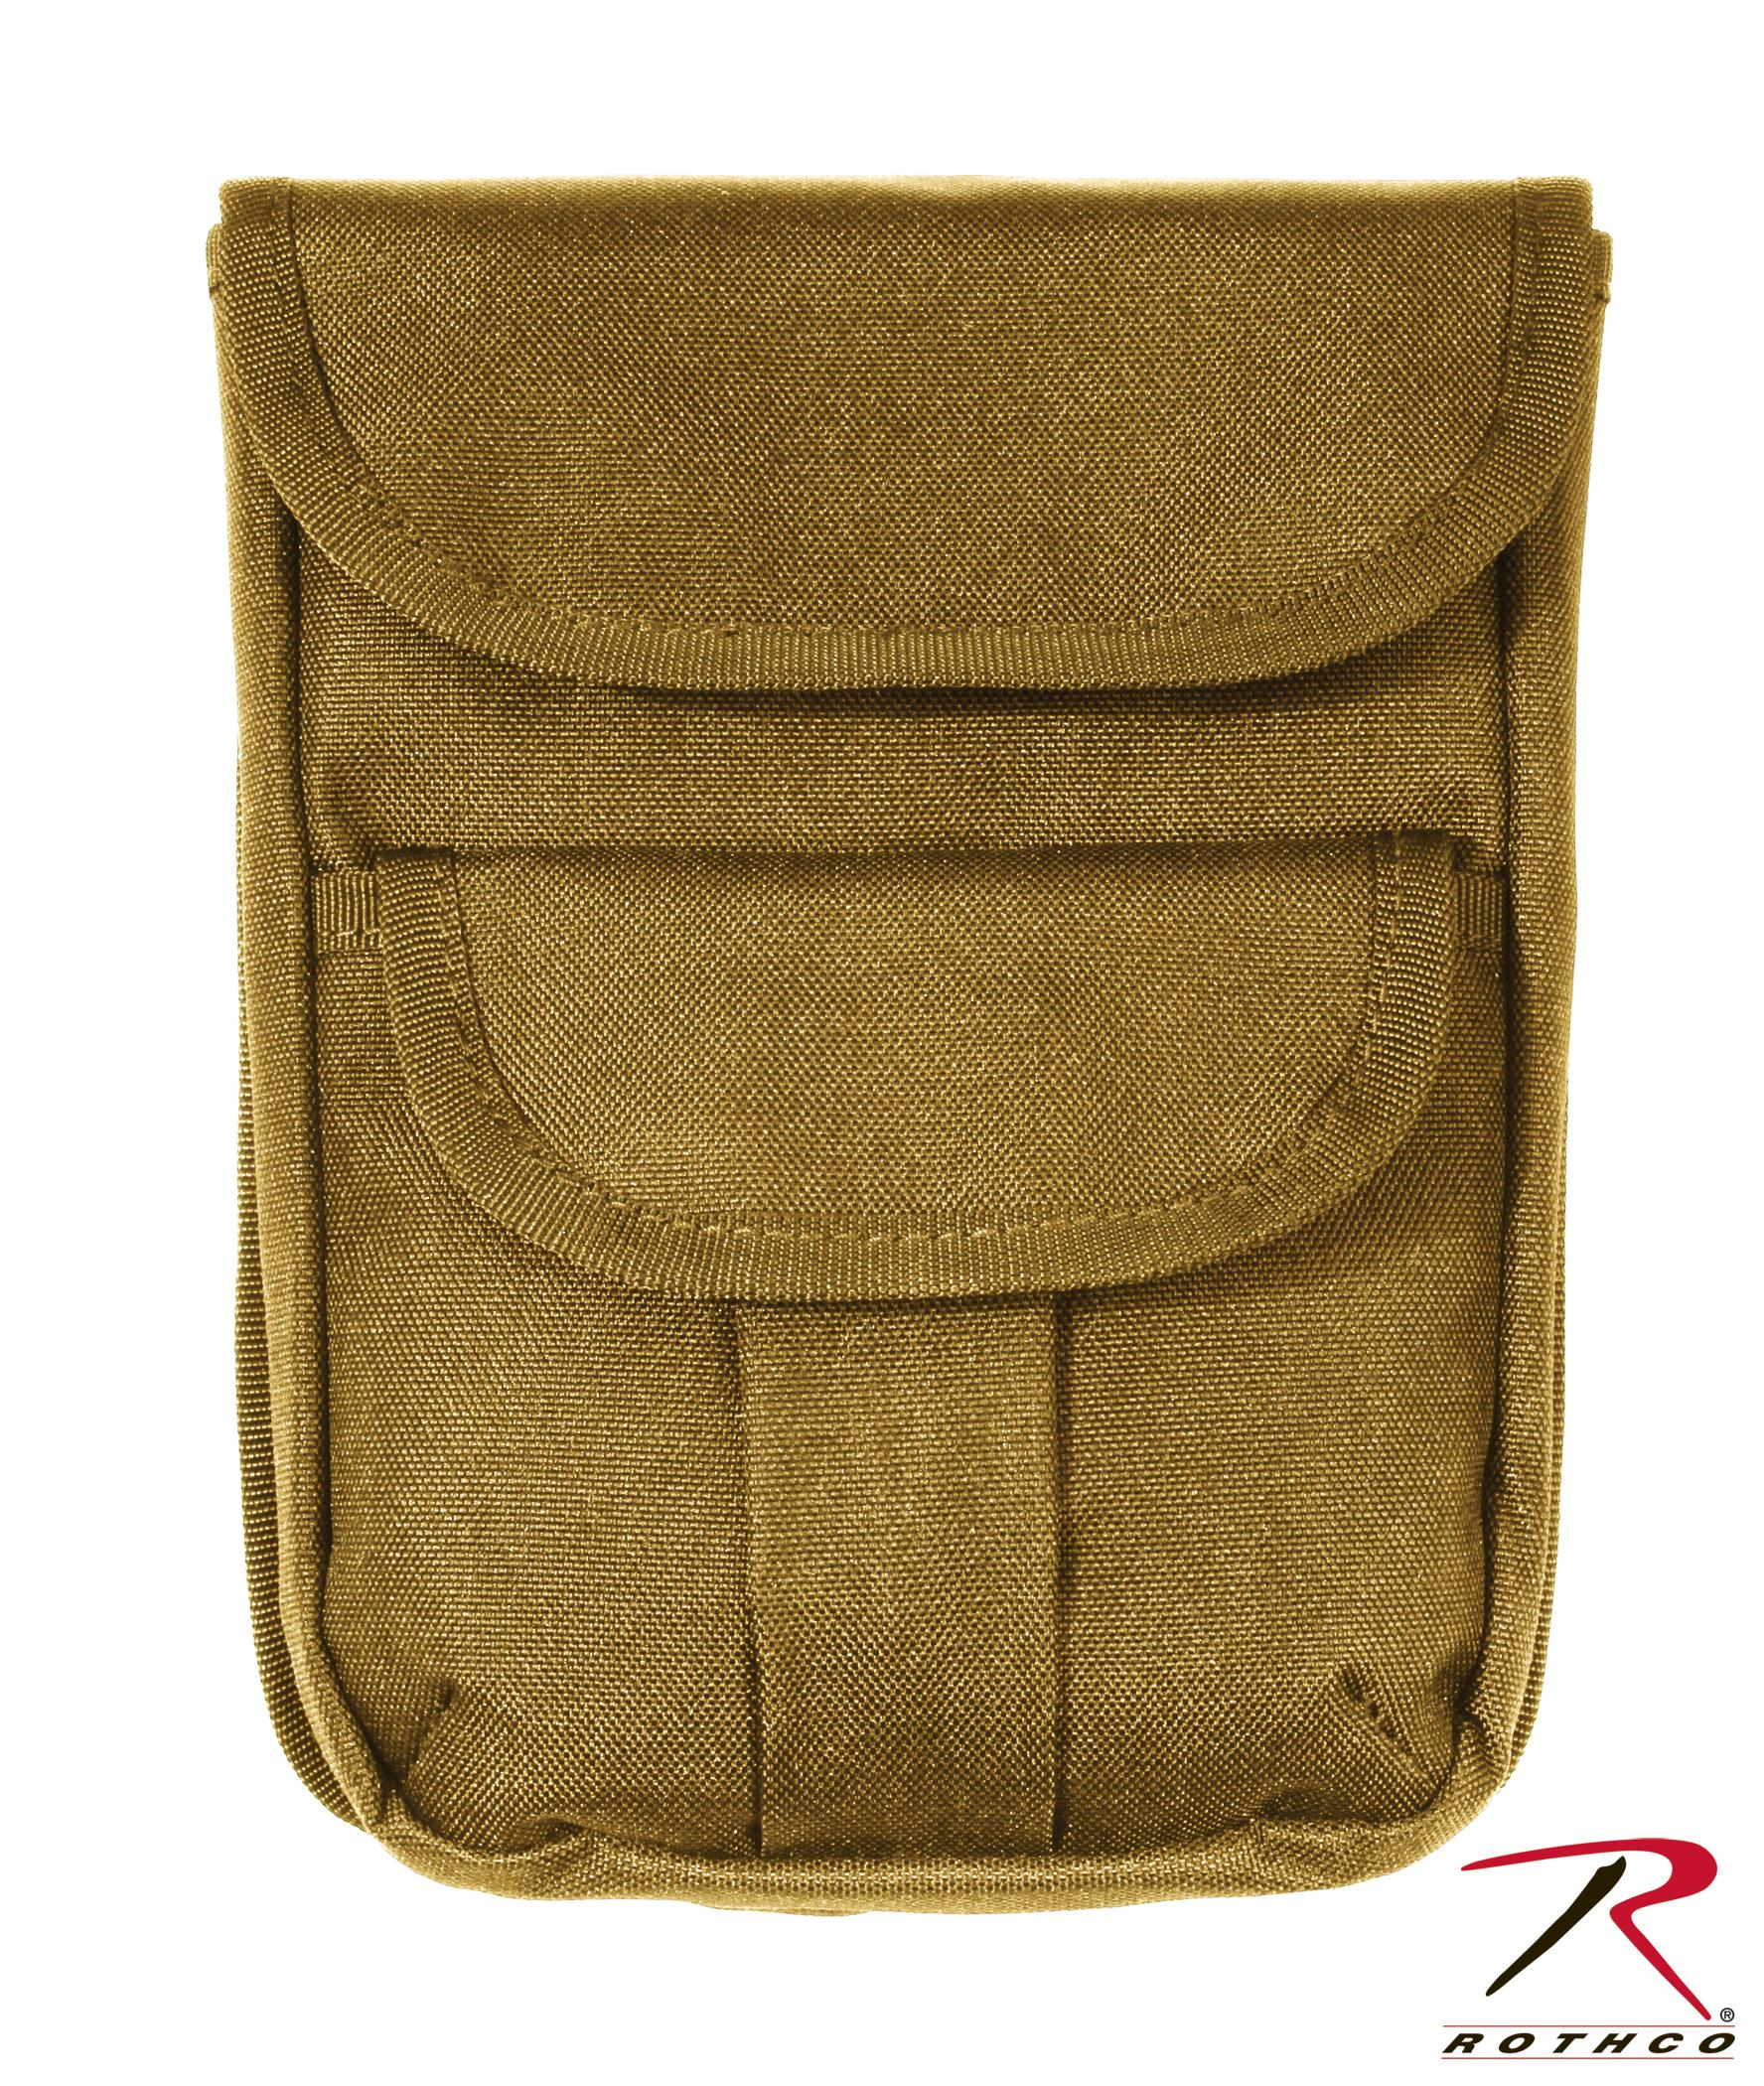 Rothco MOLLE 2 Pocket Ammo Pouch - Coyote Brown